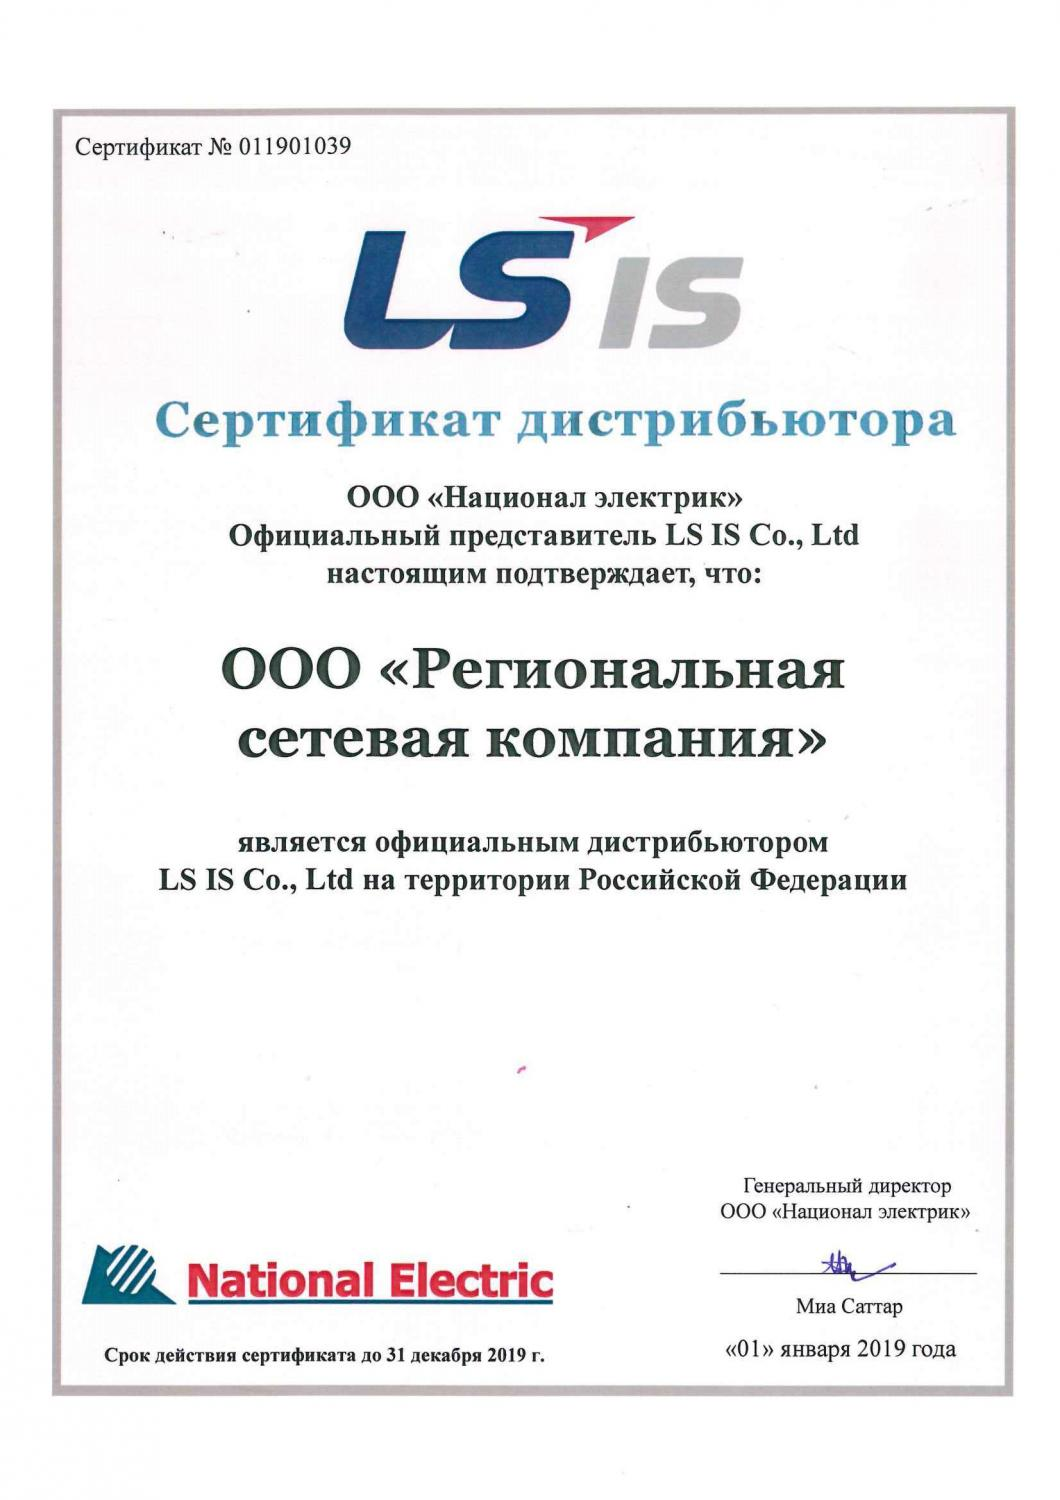 Сертификат LS IS Co., Ltd